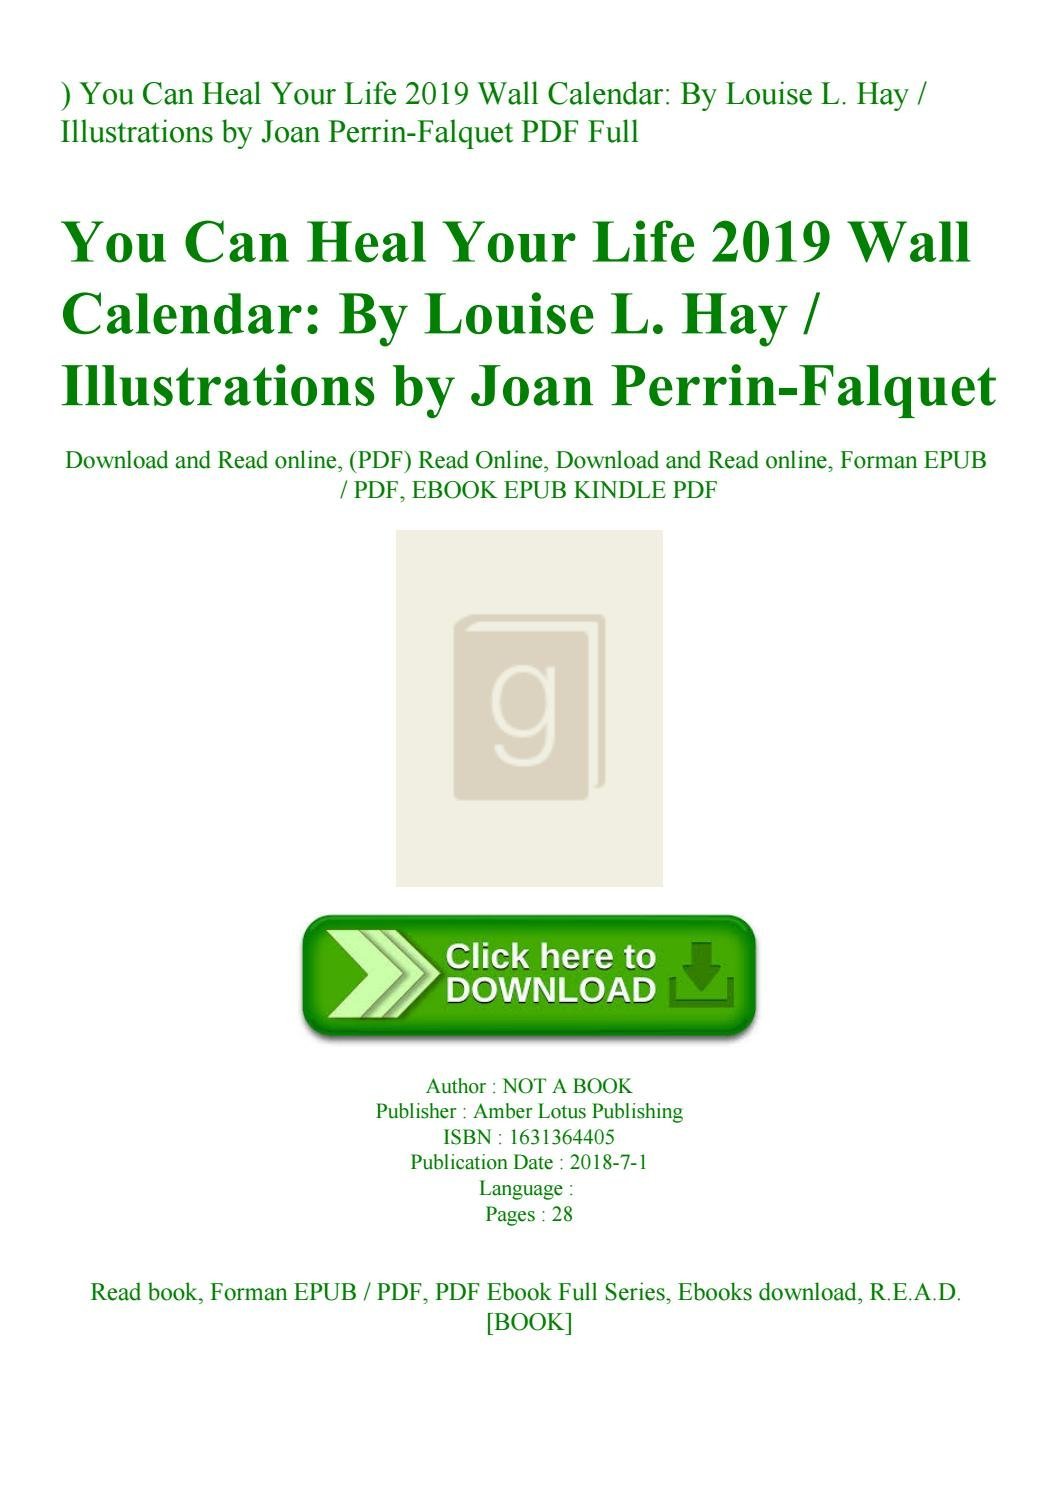 Read) You Can Heal Your Life 2019 Wall Calendarlouise L. Hay Louise L Hay Calendar 2019